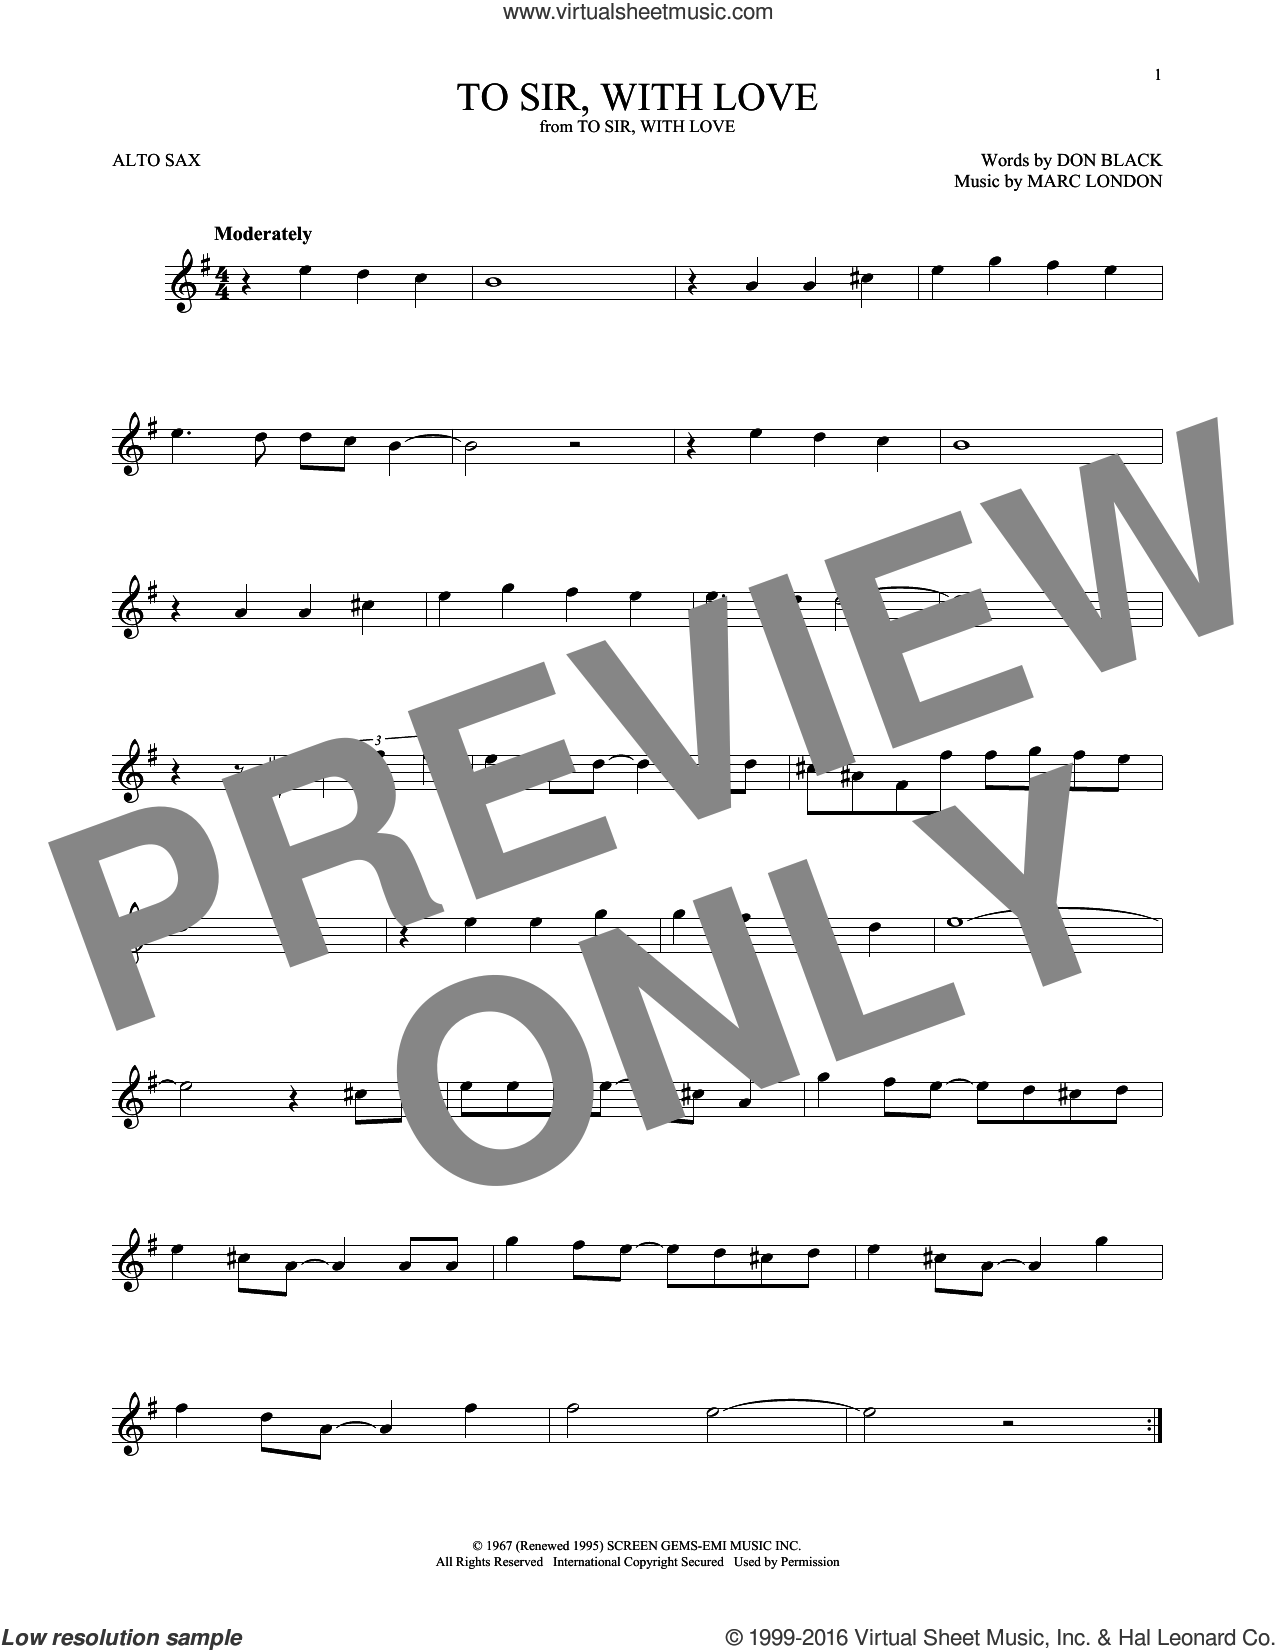 To Sir, With Love sheet music for alto saxophone solo by Lulu, Don Black and Marc London, intermediate skill level